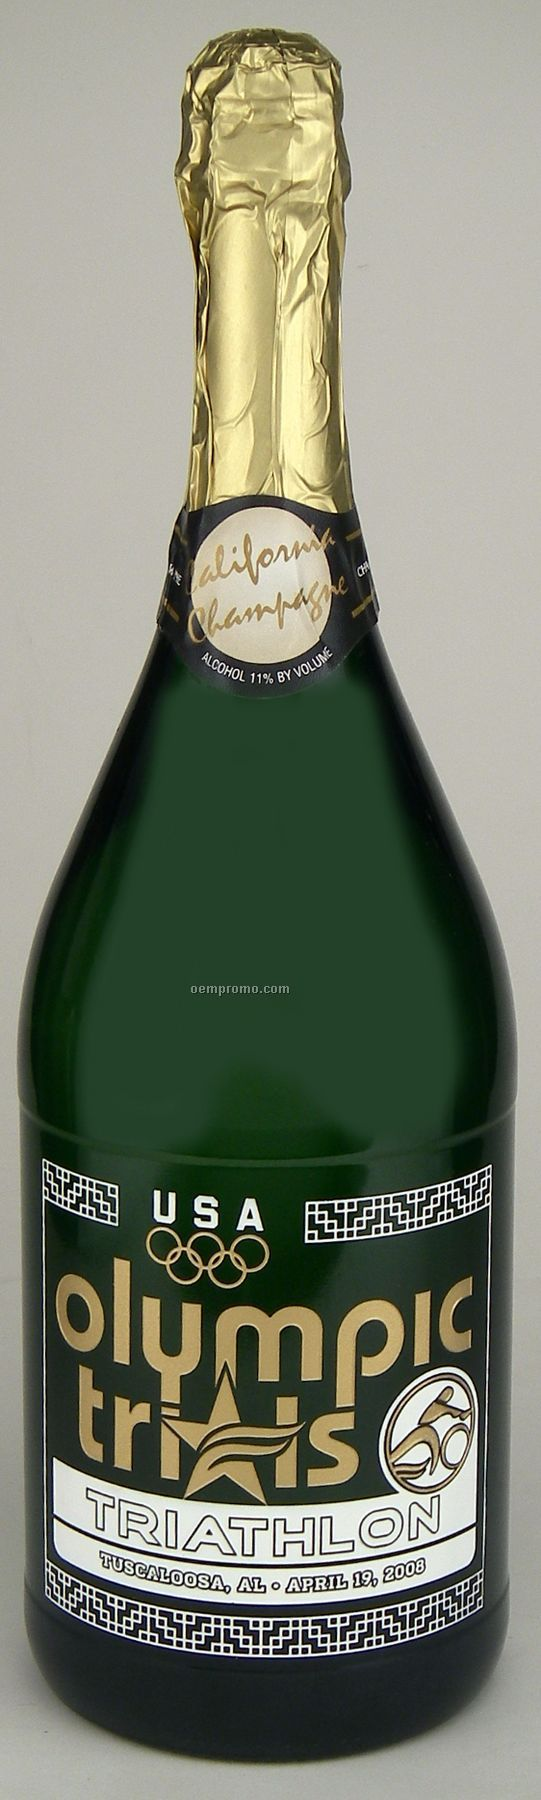 1.5l Magnum Ca Champagne (Sparkling Wine) Etched With 1 Color Fill